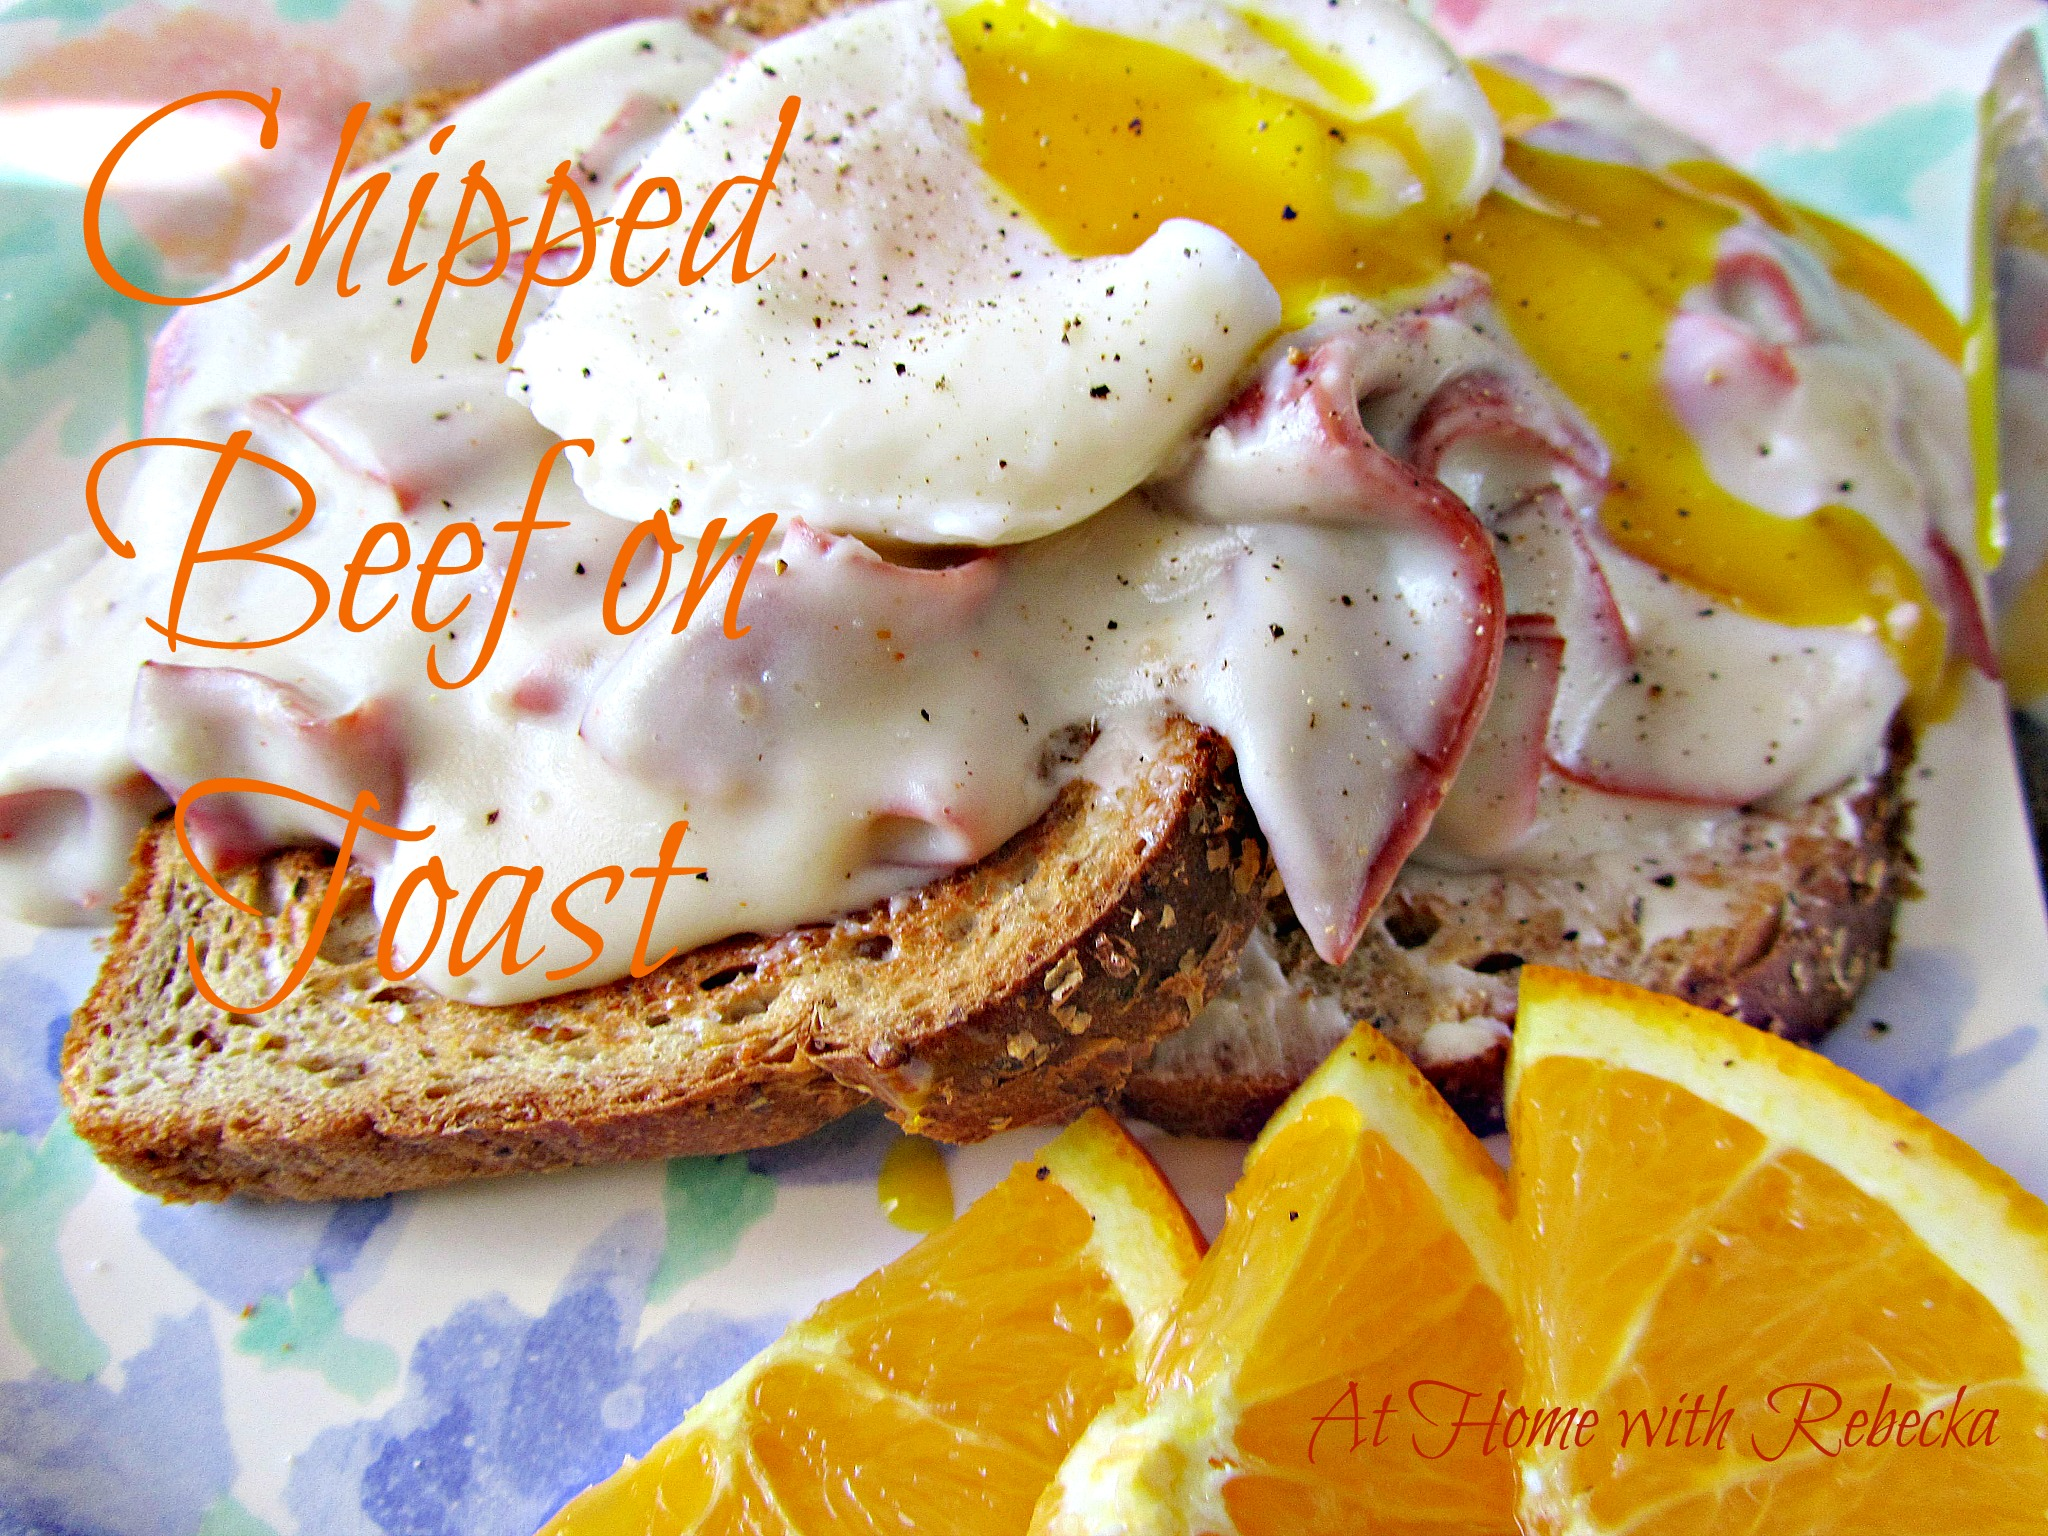 Chipped beef of Toast